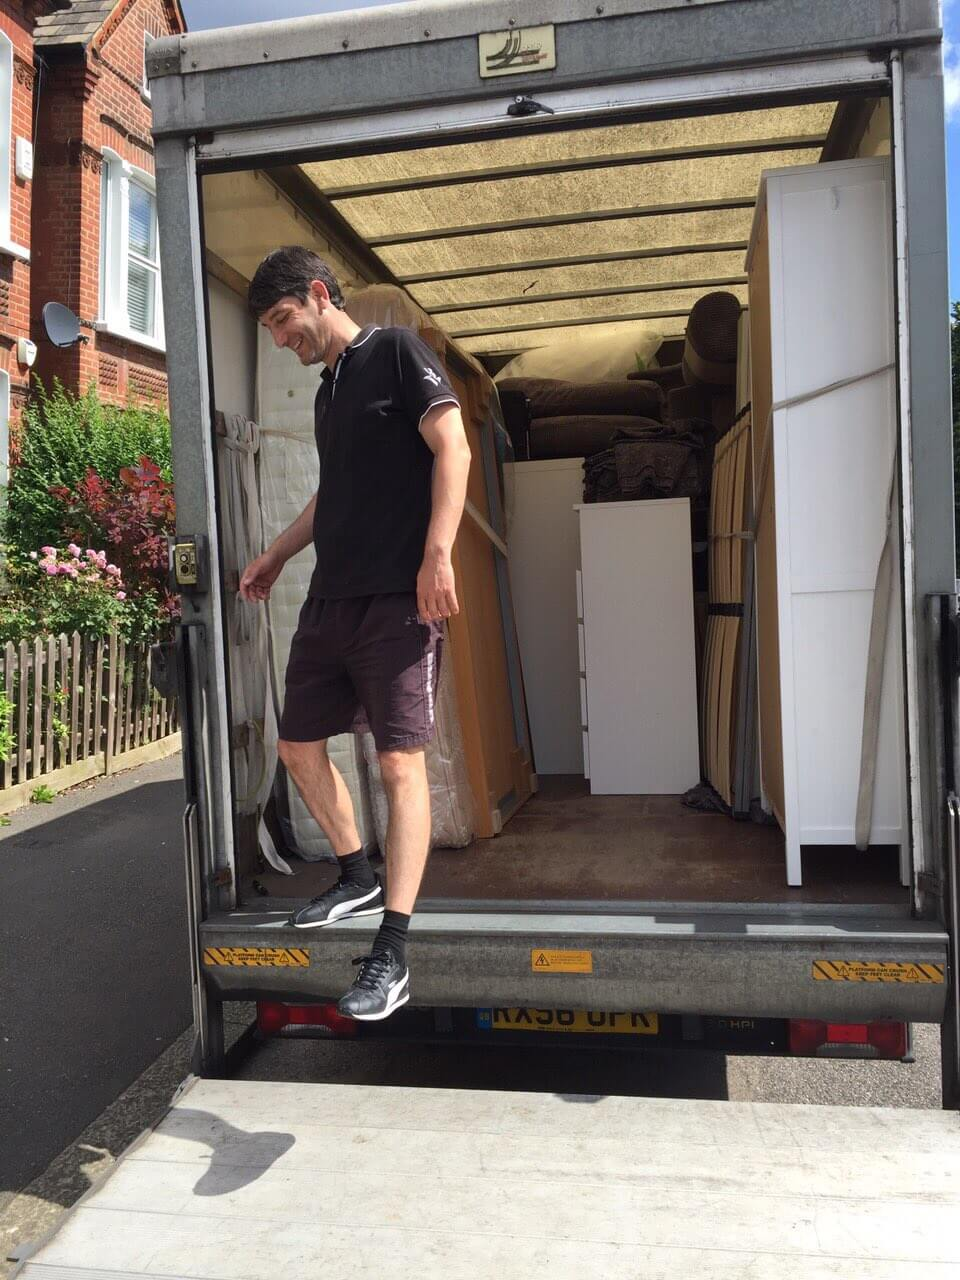 van removals South Chingford